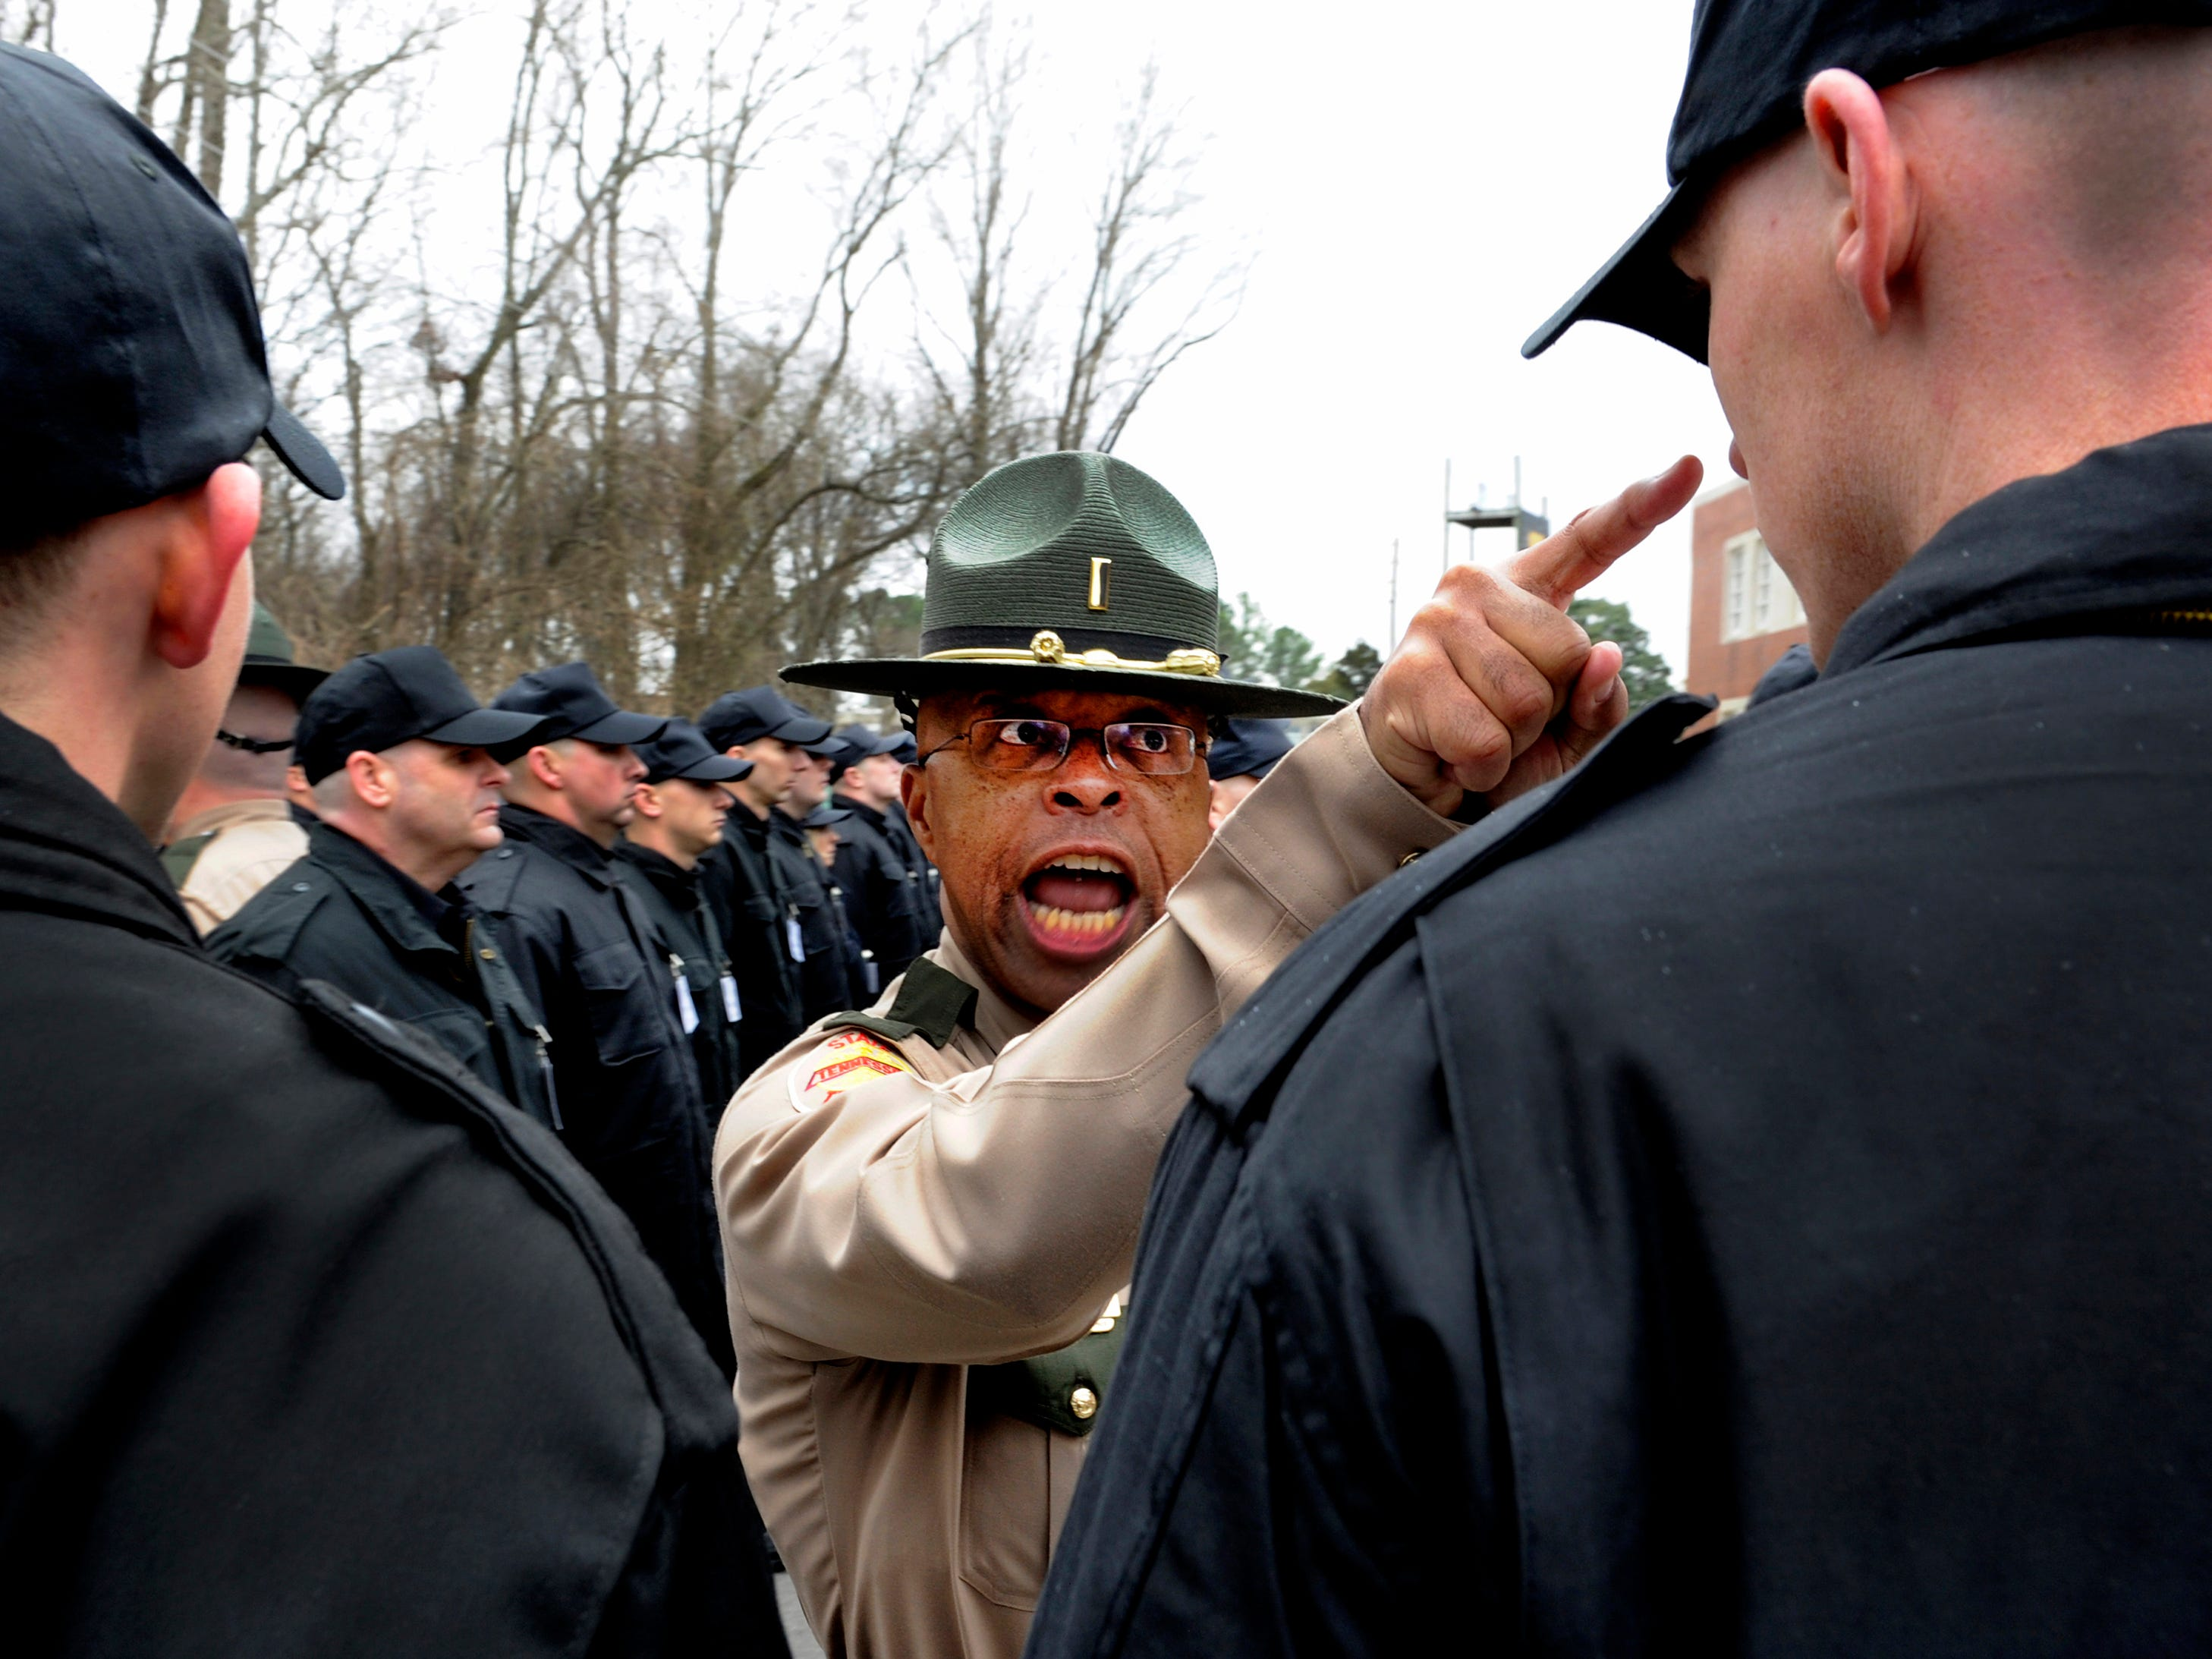 """Tennessee Highway Patrol cadet Brian Ramsey said, """"I've always looked up to Troopers,"""" but by the end of the first snow and sleet filled March day at the Tennessee Highway Patrol Training Center in Donaldson he was thinking to himself, """"I can't believe I'm going to have to do this for 18 more weeks."""" Early on Ramsey caught the attention of Lt. Robert Bighem, assistant director of the academy, who singled out Ramsey during one of the first outdoor formations. Bighem says, """"We're in their face because we want them to be able to work under pressure."""" He added, """"Citizens of the state depend on the highway patrol so if they can handle the controlled stress here they can handle the stress out there."""""""